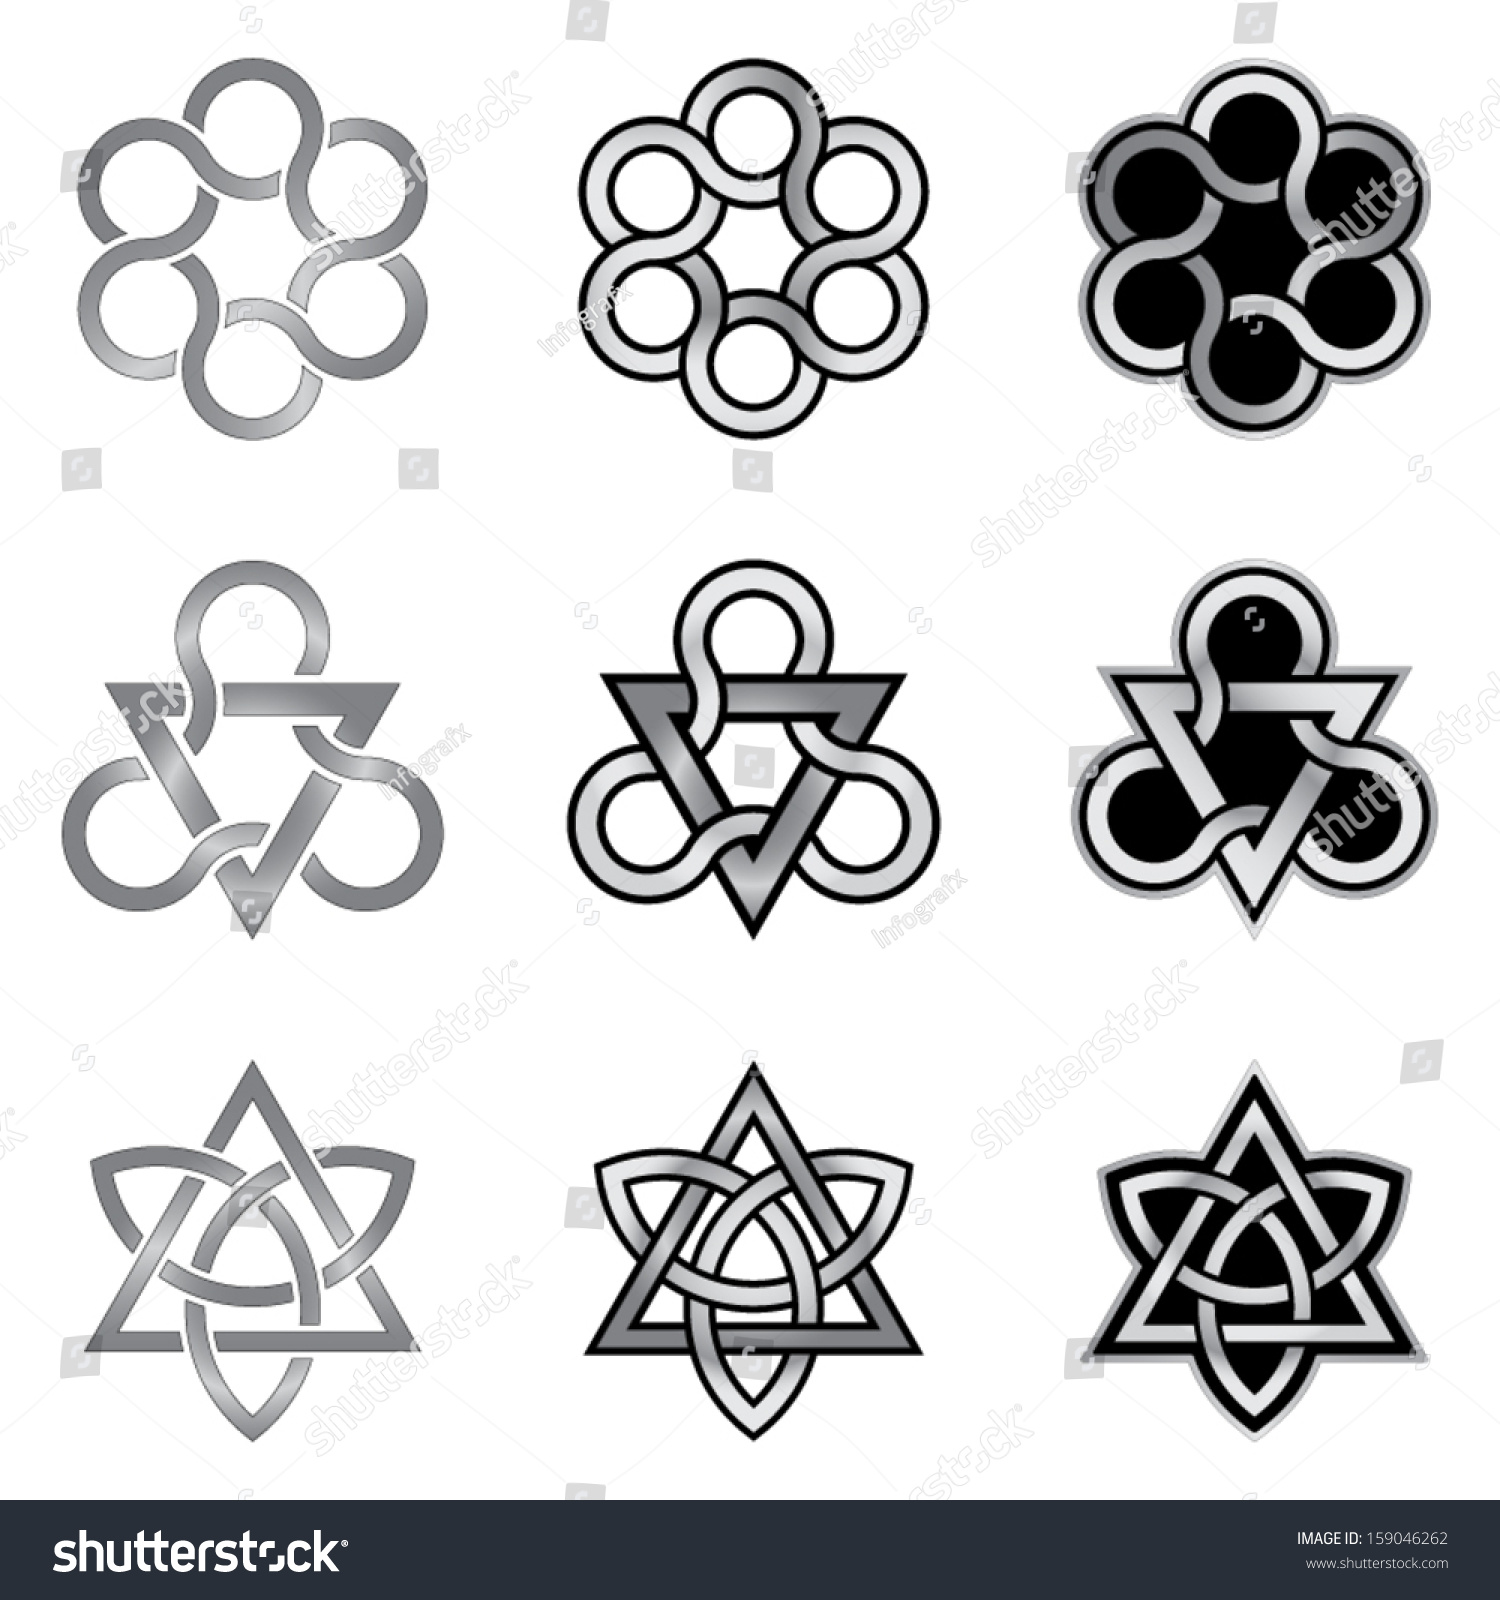 Celtic knot design elements patterns models templates stock vector celtic knot design elements patterns models templates stock vector 159046262 shutterstock pronofoot35fo Image collections